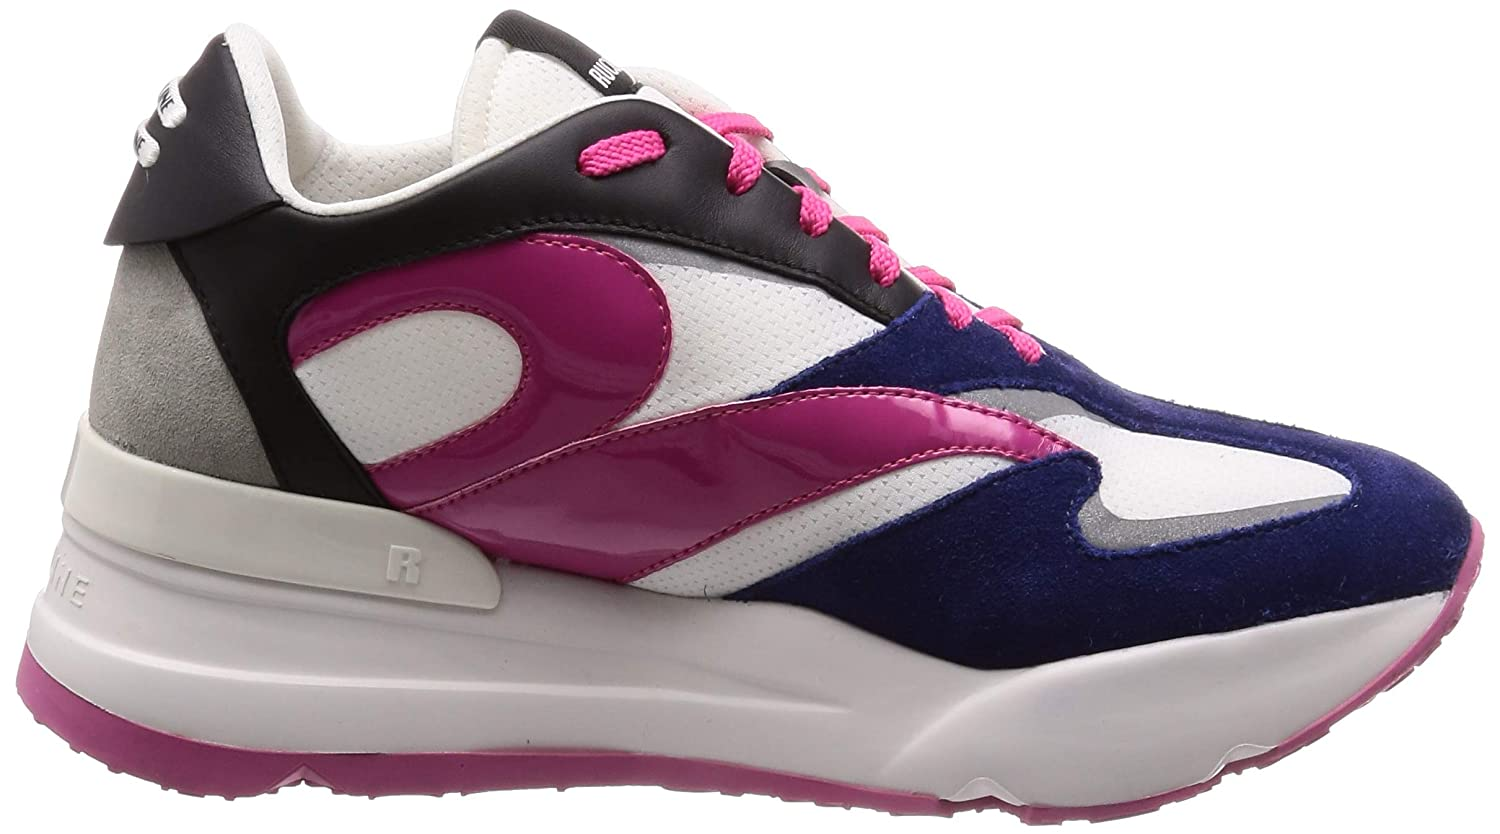 rucoline Womens Shoes 4035 at 1035 Fantasy Fuchsia Sneakers SS 2019